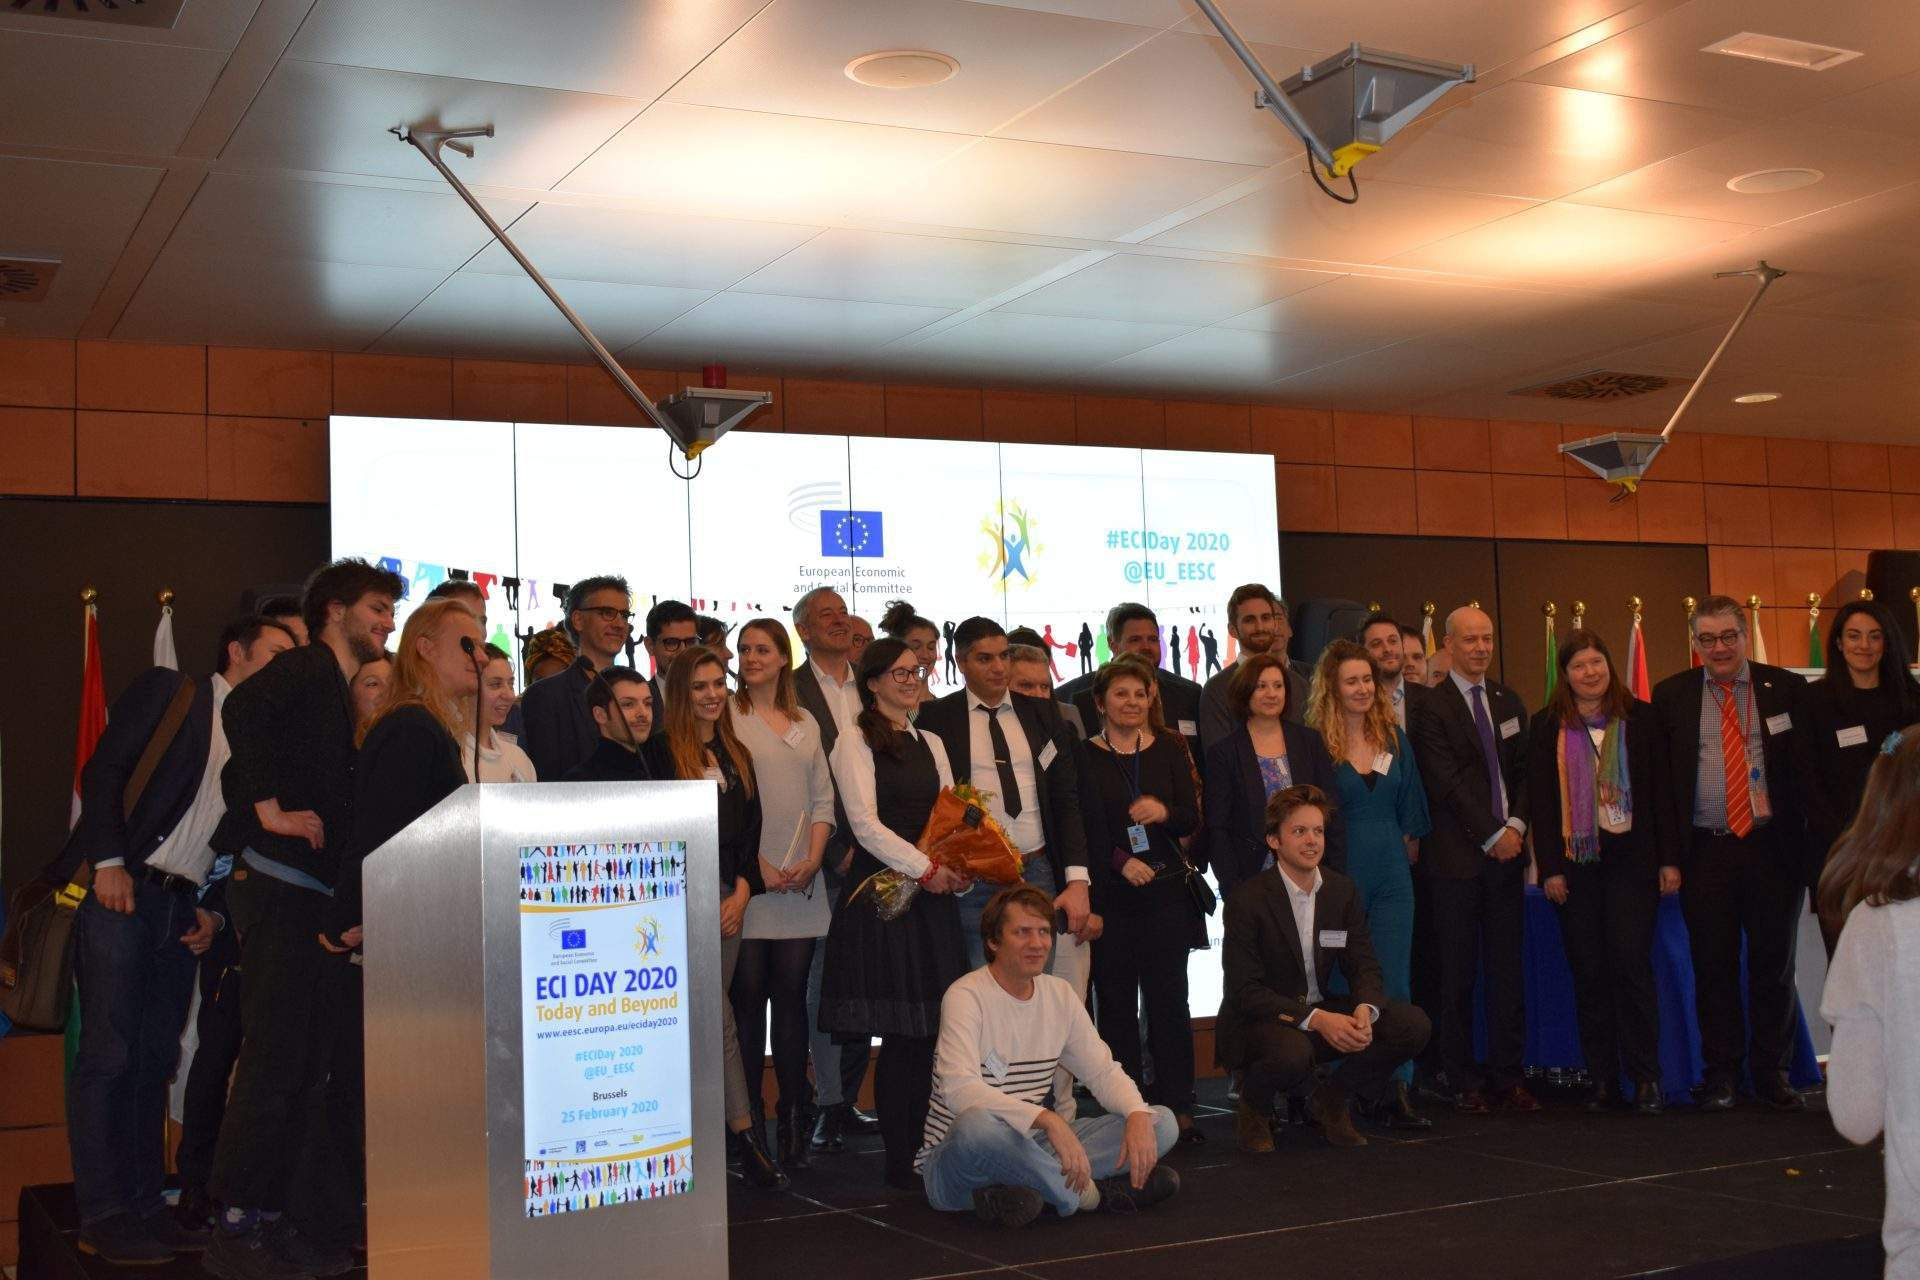 ECI Day 2020 – What Will The Future Hold For The European Citizens' Initiative?